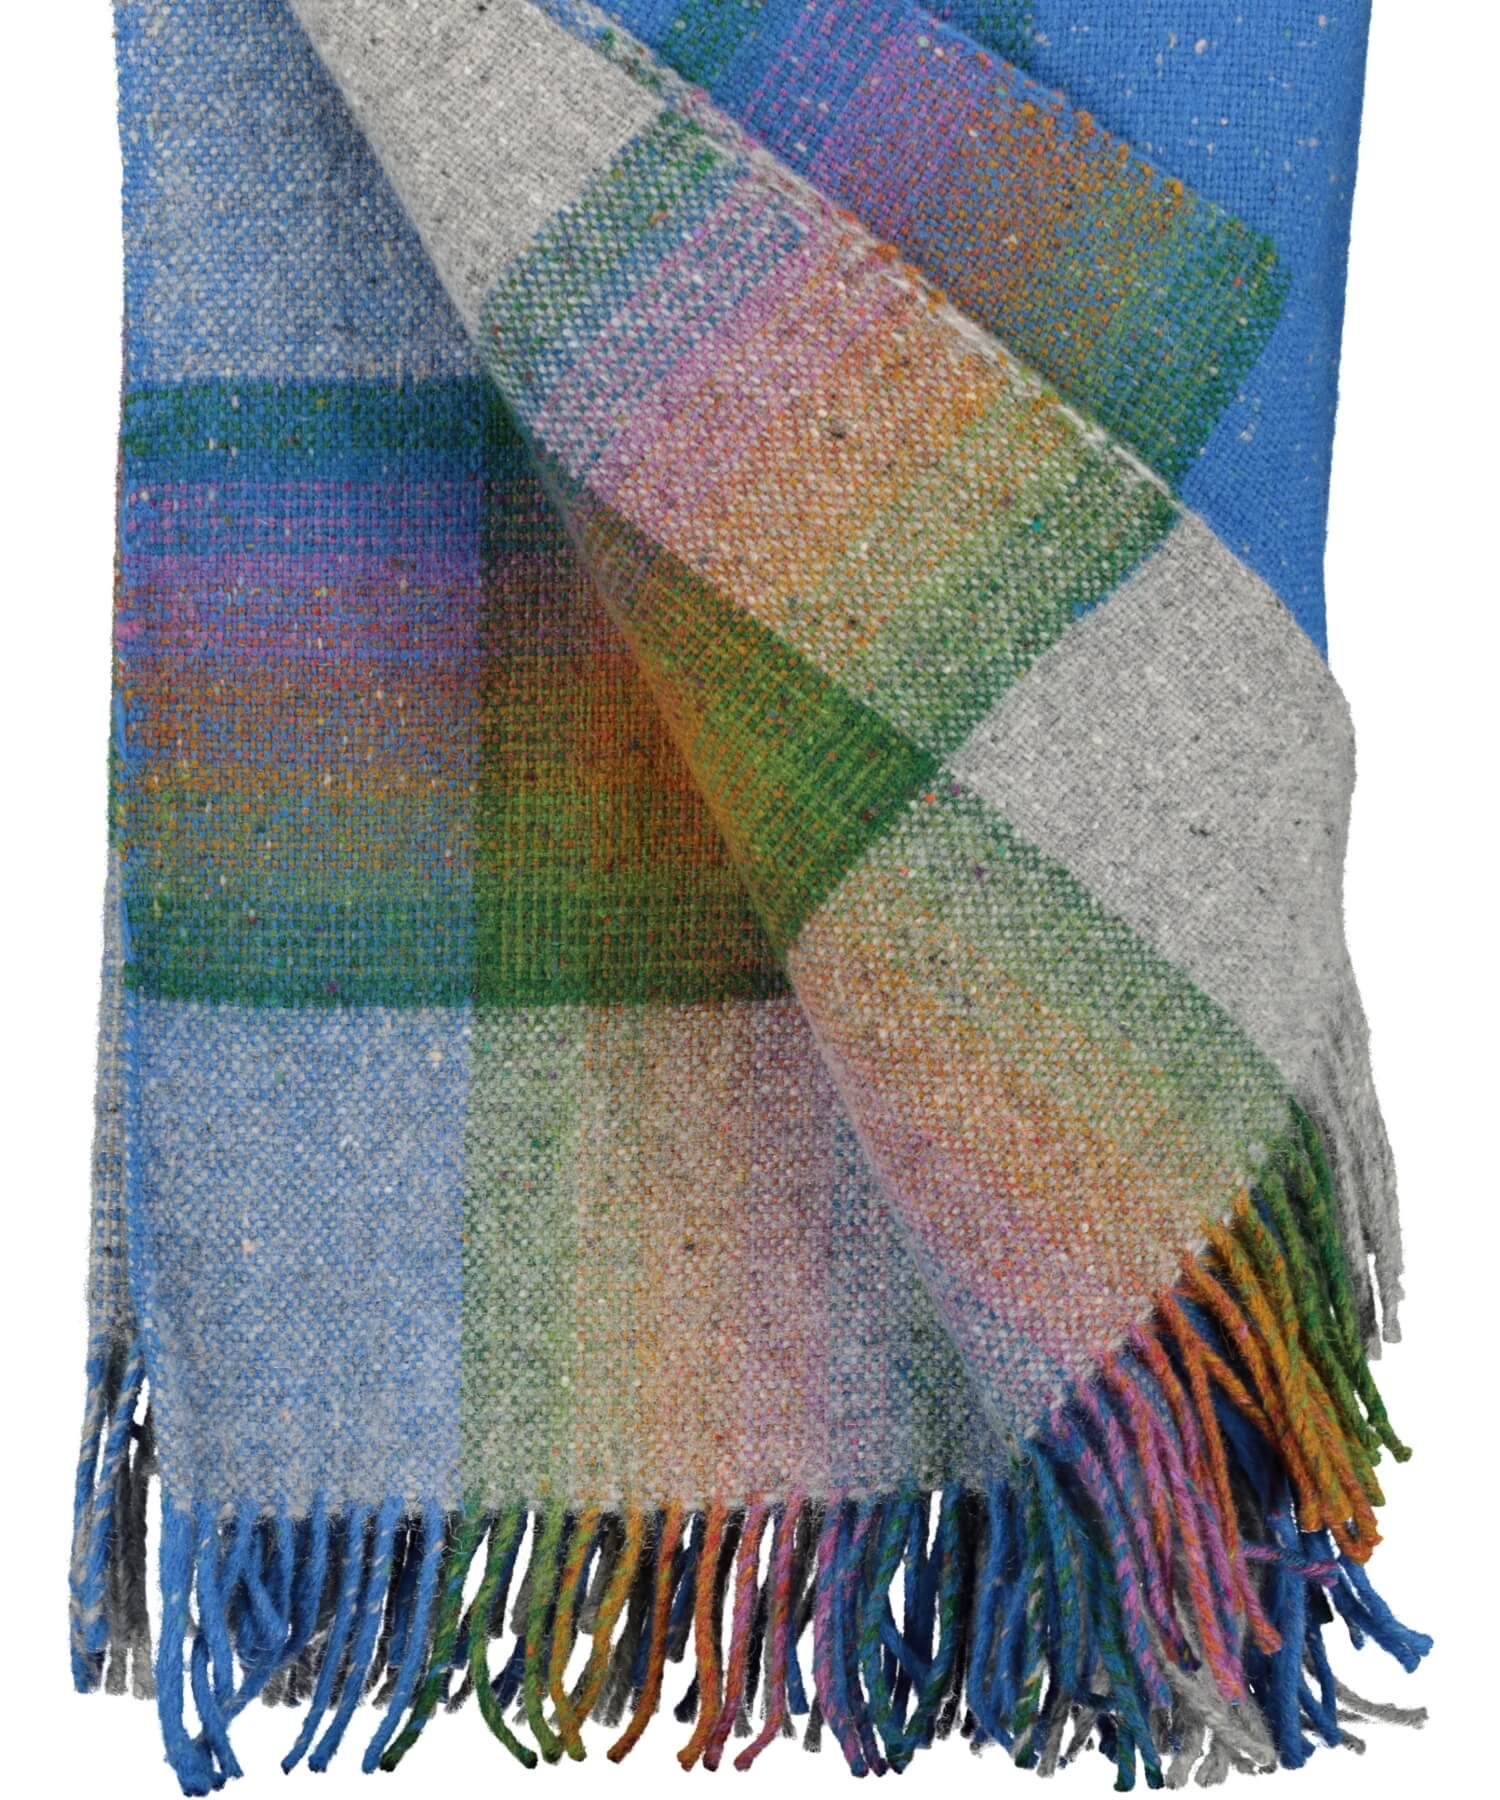 Handwoven Donegal Prism Throw - Spectrum - [Studio Donegal] - Throws & Cushions - Irish Gifts